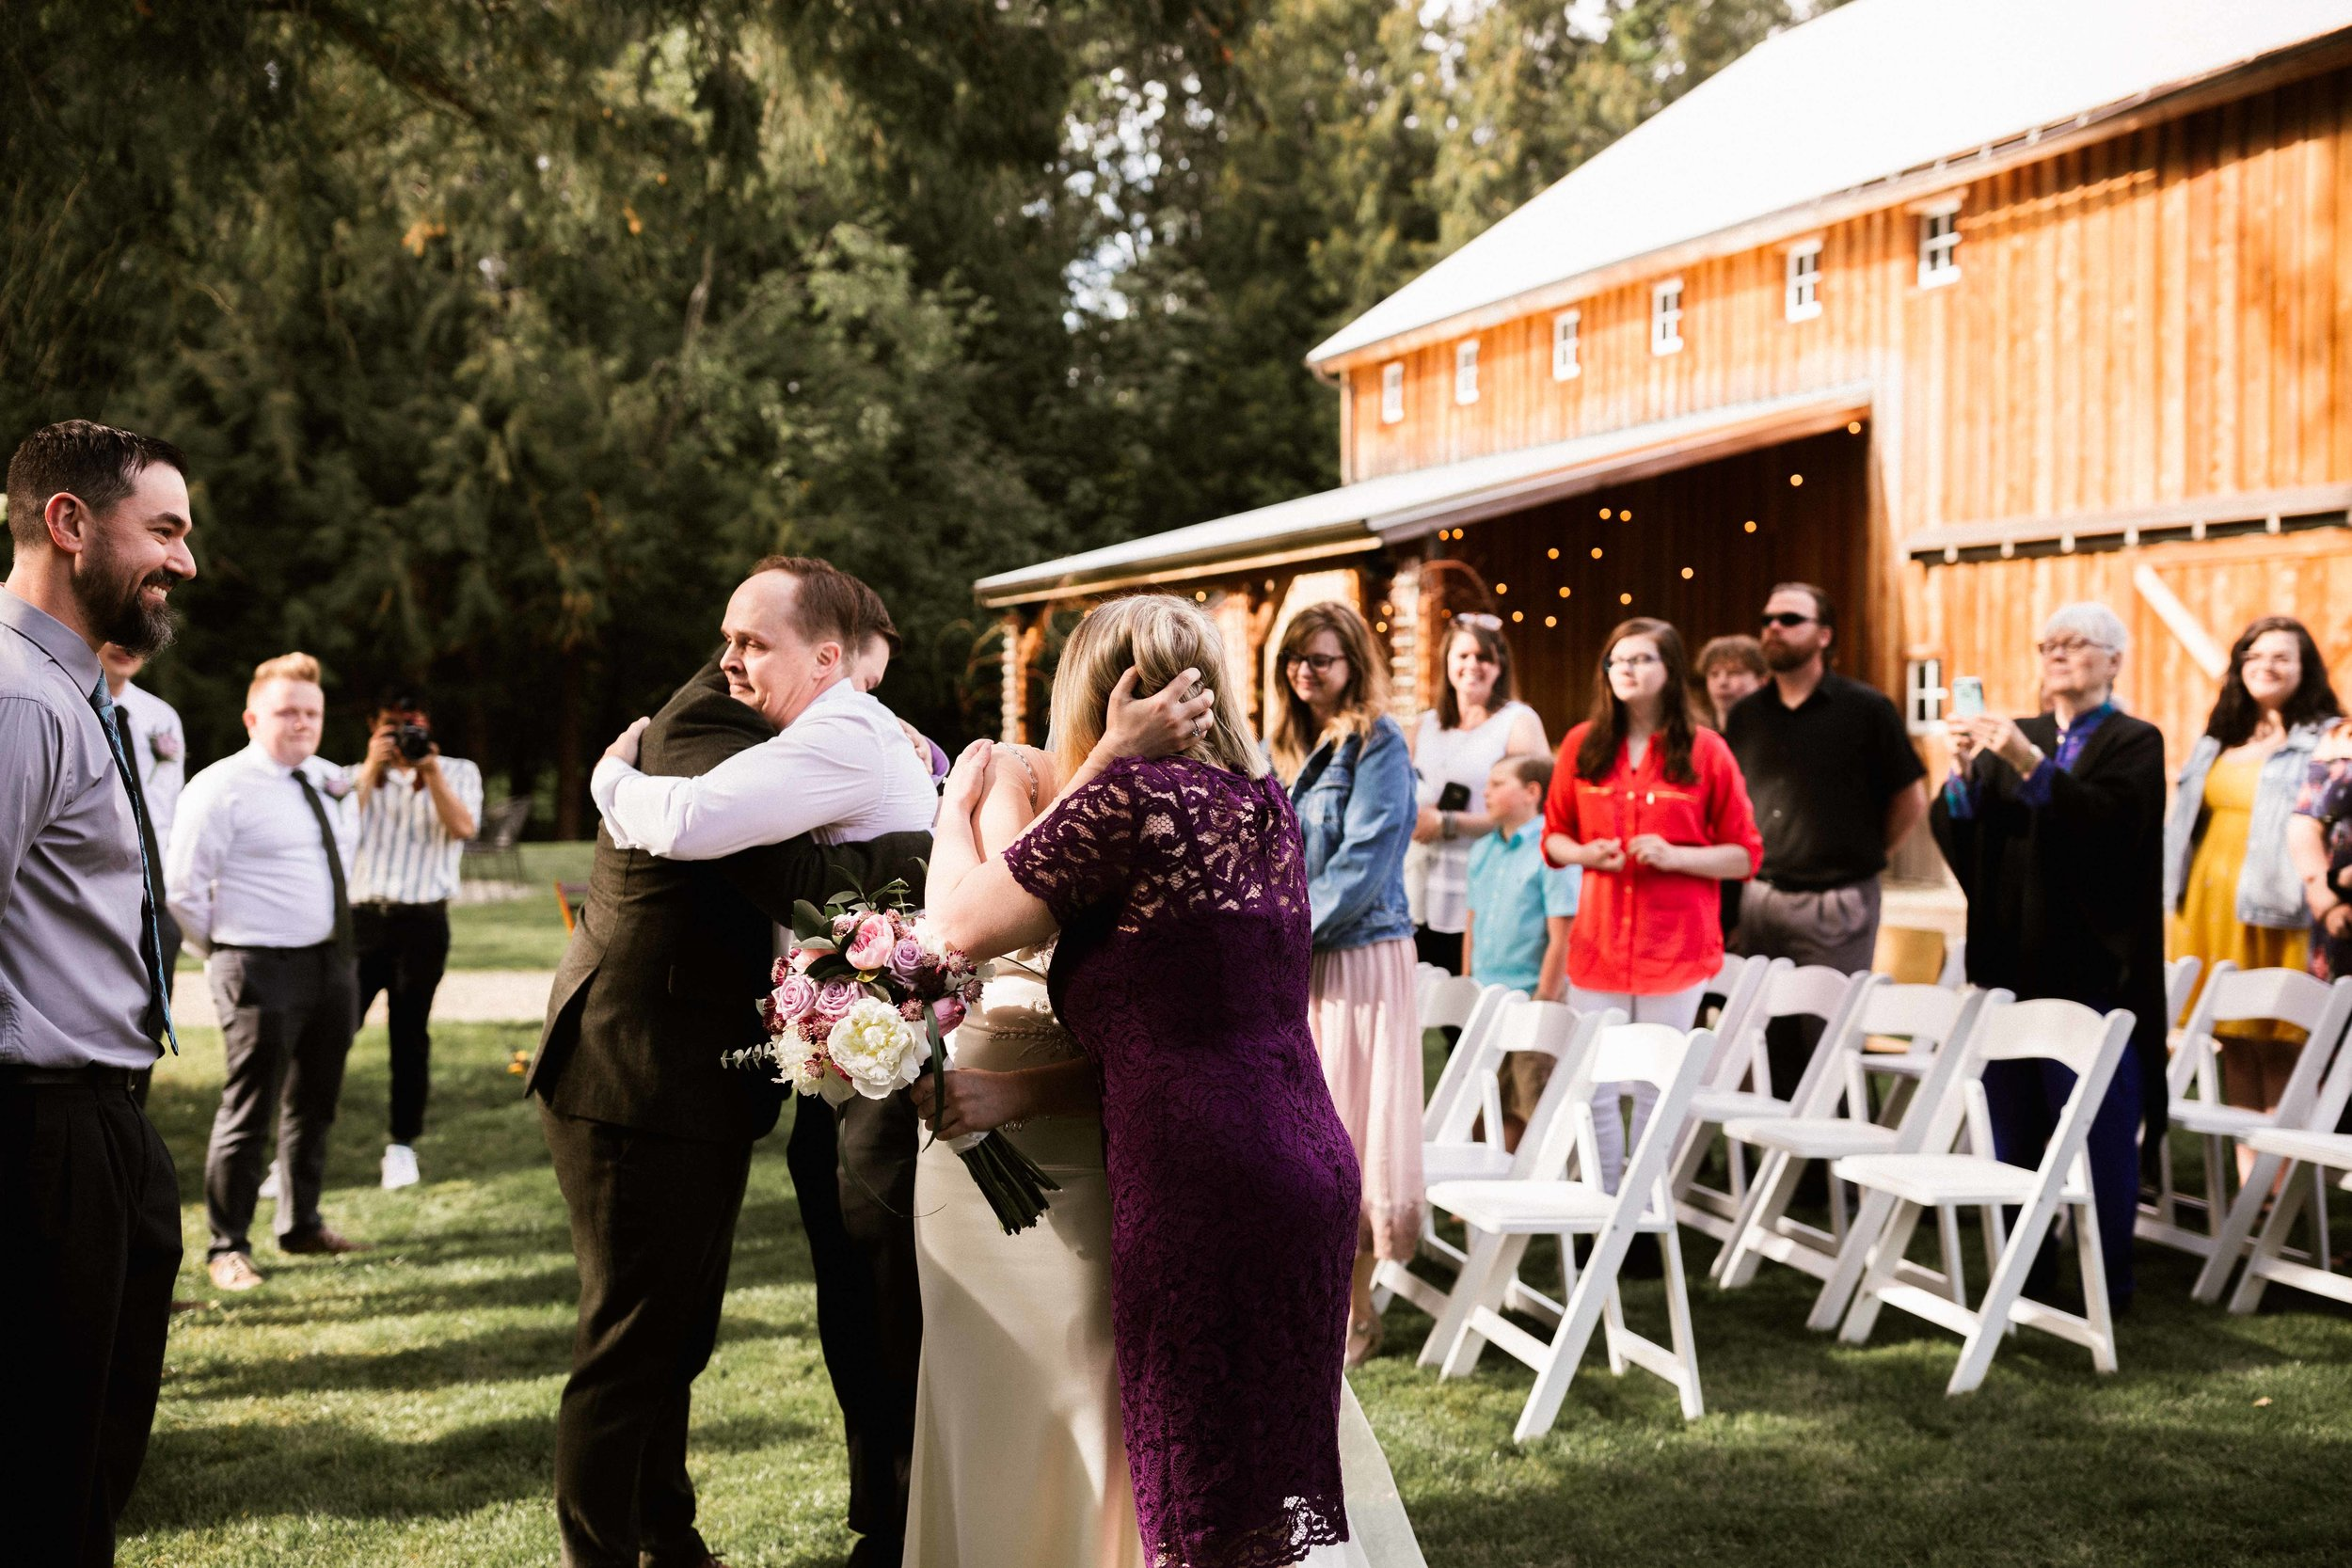 everson-barn-wedding-77.jpg